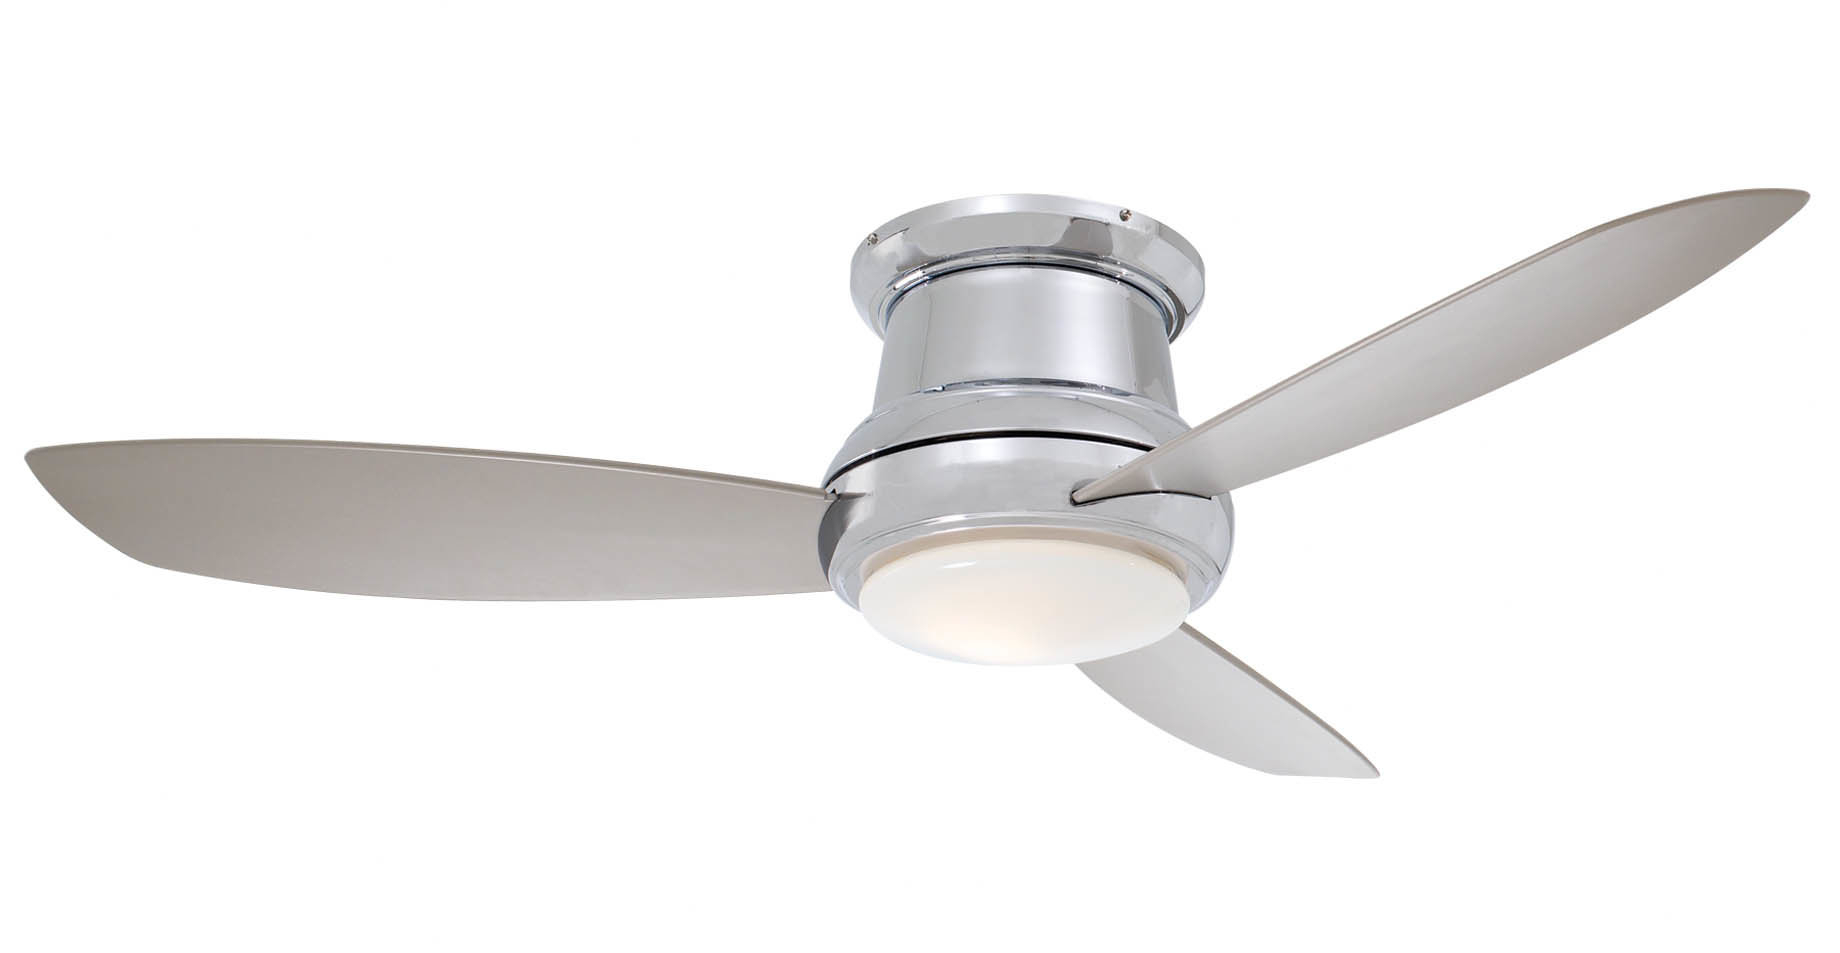 "Trendy 44"" Concept Ii 3 Blade Led Ceiling Fan Intended For Concept Ii 3 Blade Led Ceiling Fans With Remote (View 2 of 20)"